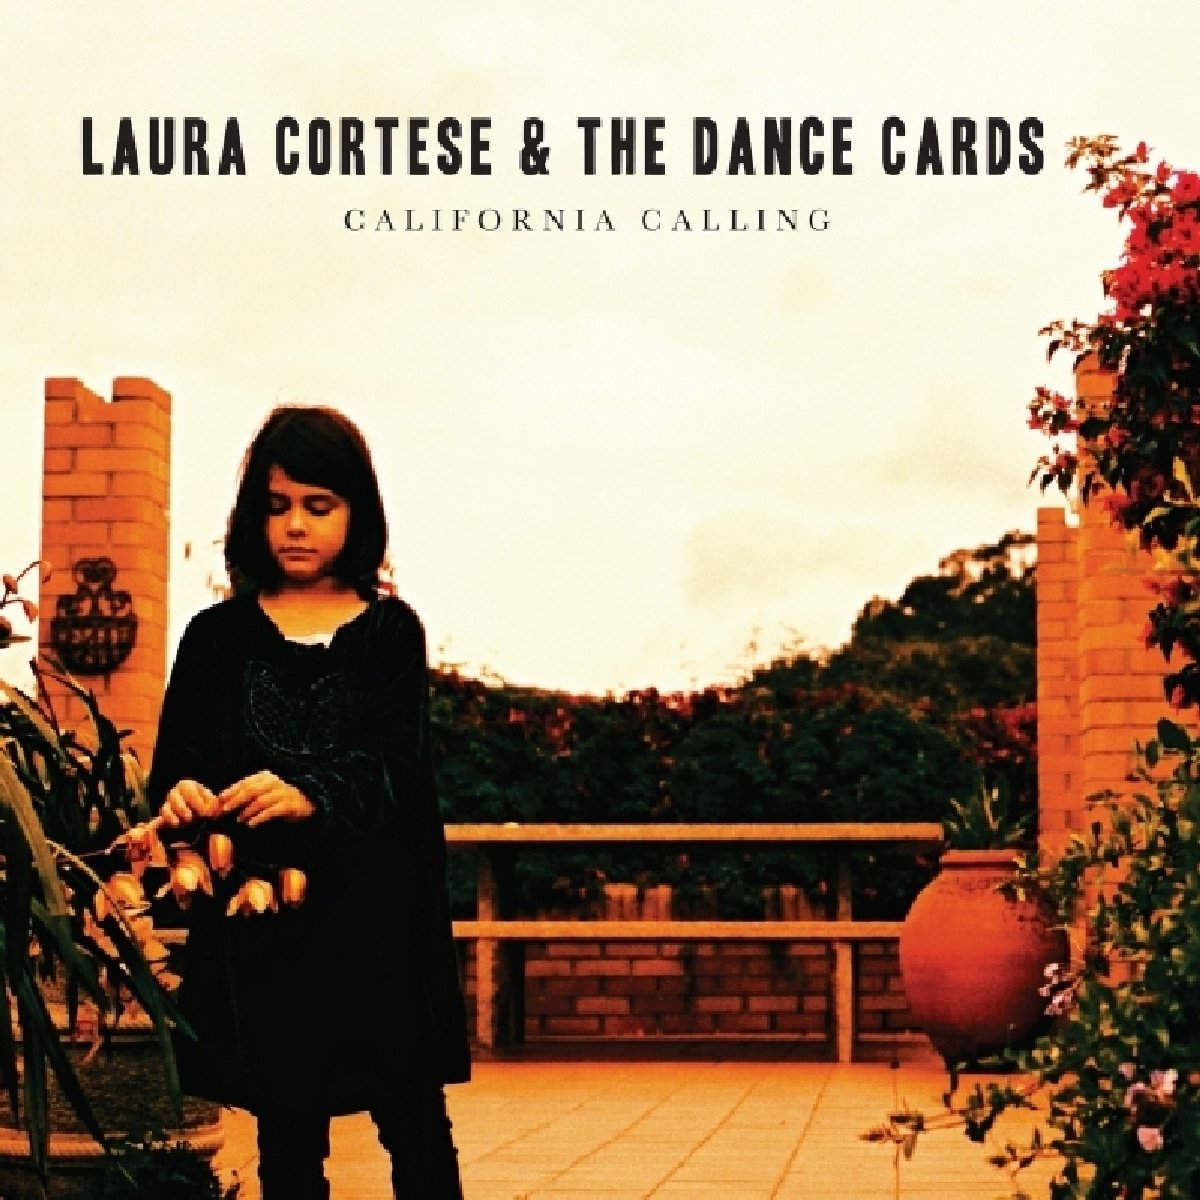 LAURA & THE DANCE CARDS CORTESE - California Calling (Digipack Packaging)